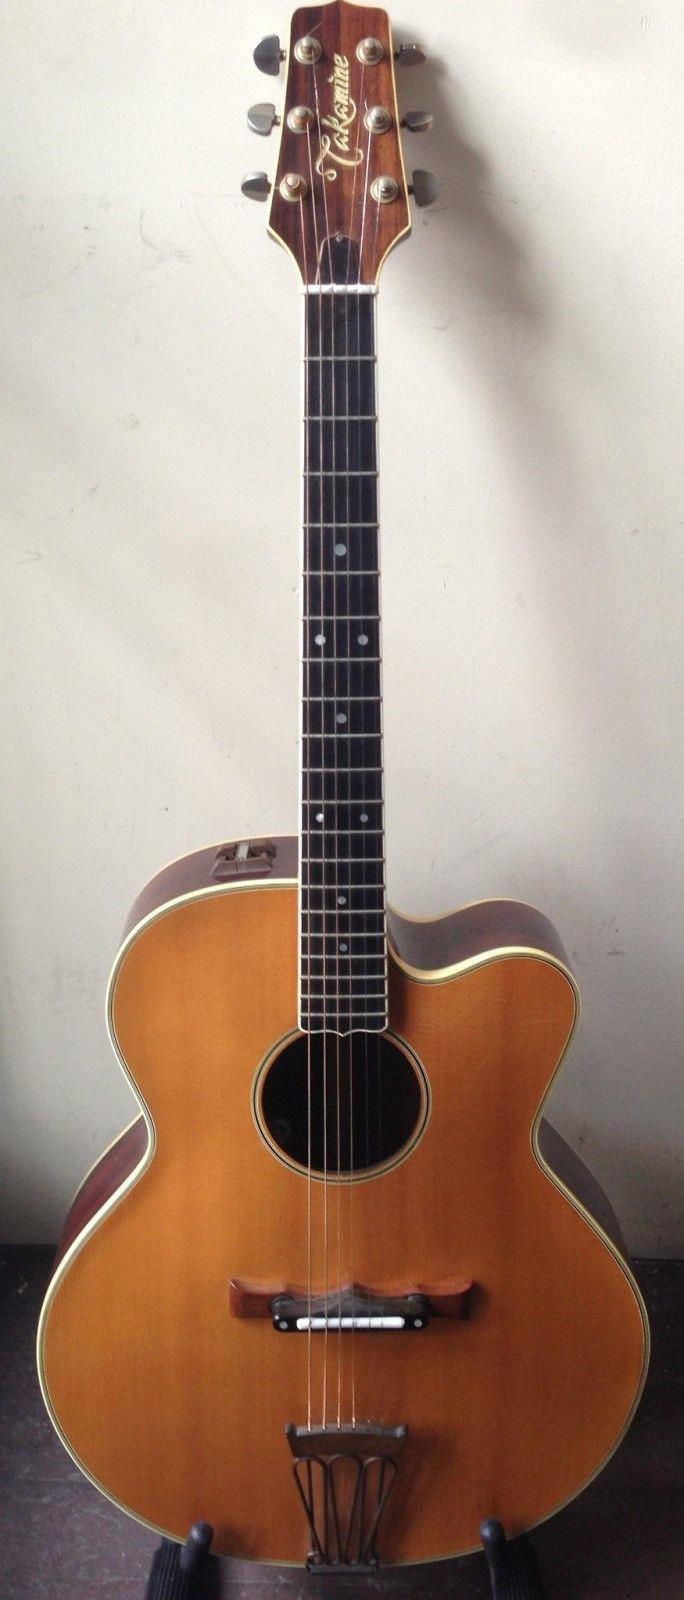 70's Takamine archtop Acoustic/Electric Guitar  --- https://www.pinterest.com/lardyfatboy/